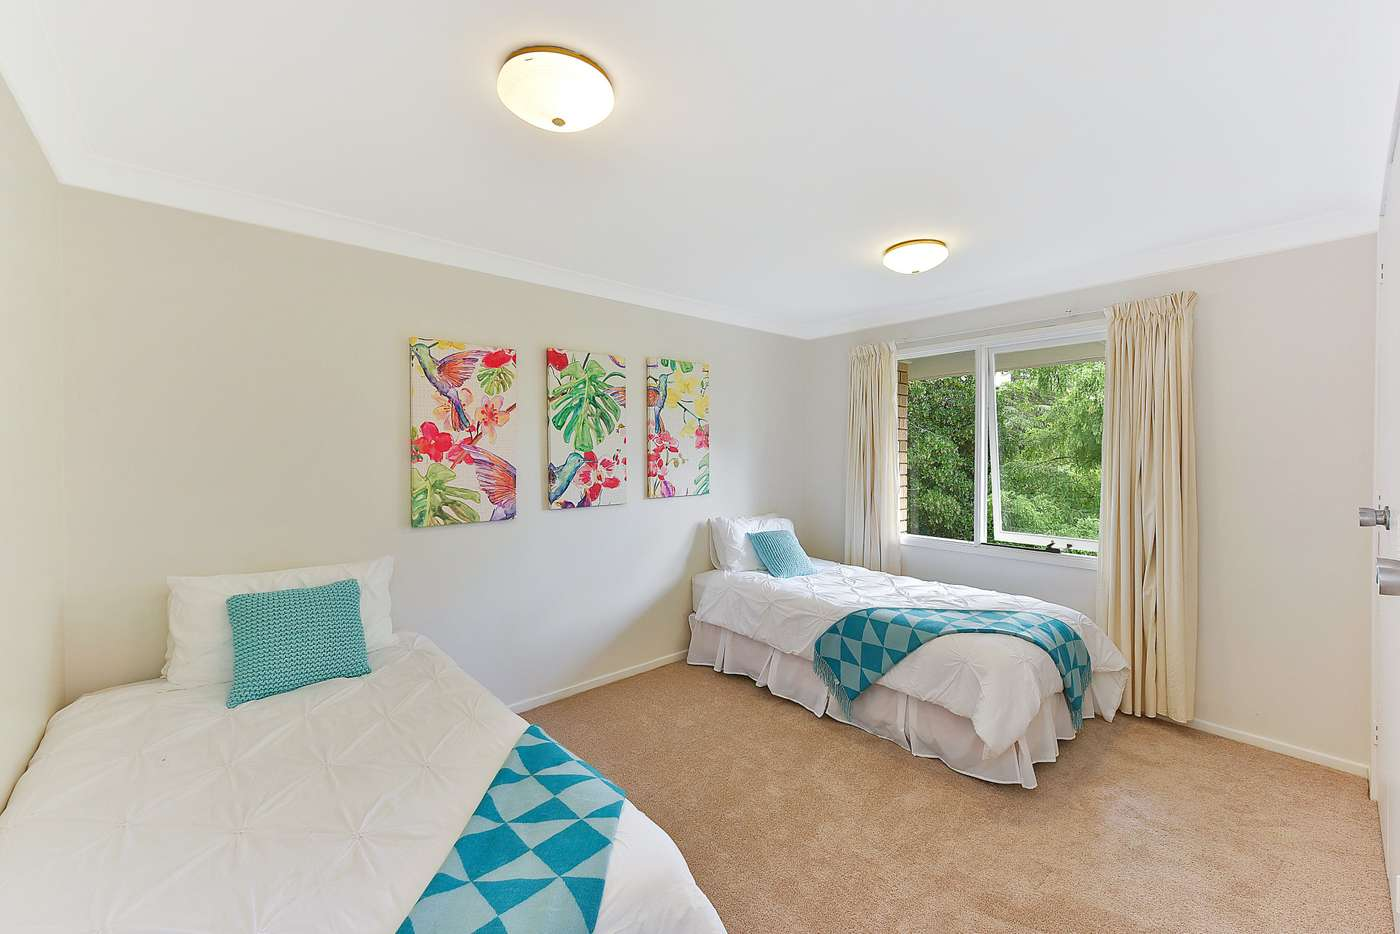 Sixth view of Homely house listing, 5 Apanie Place, Westleigh NSW 2120